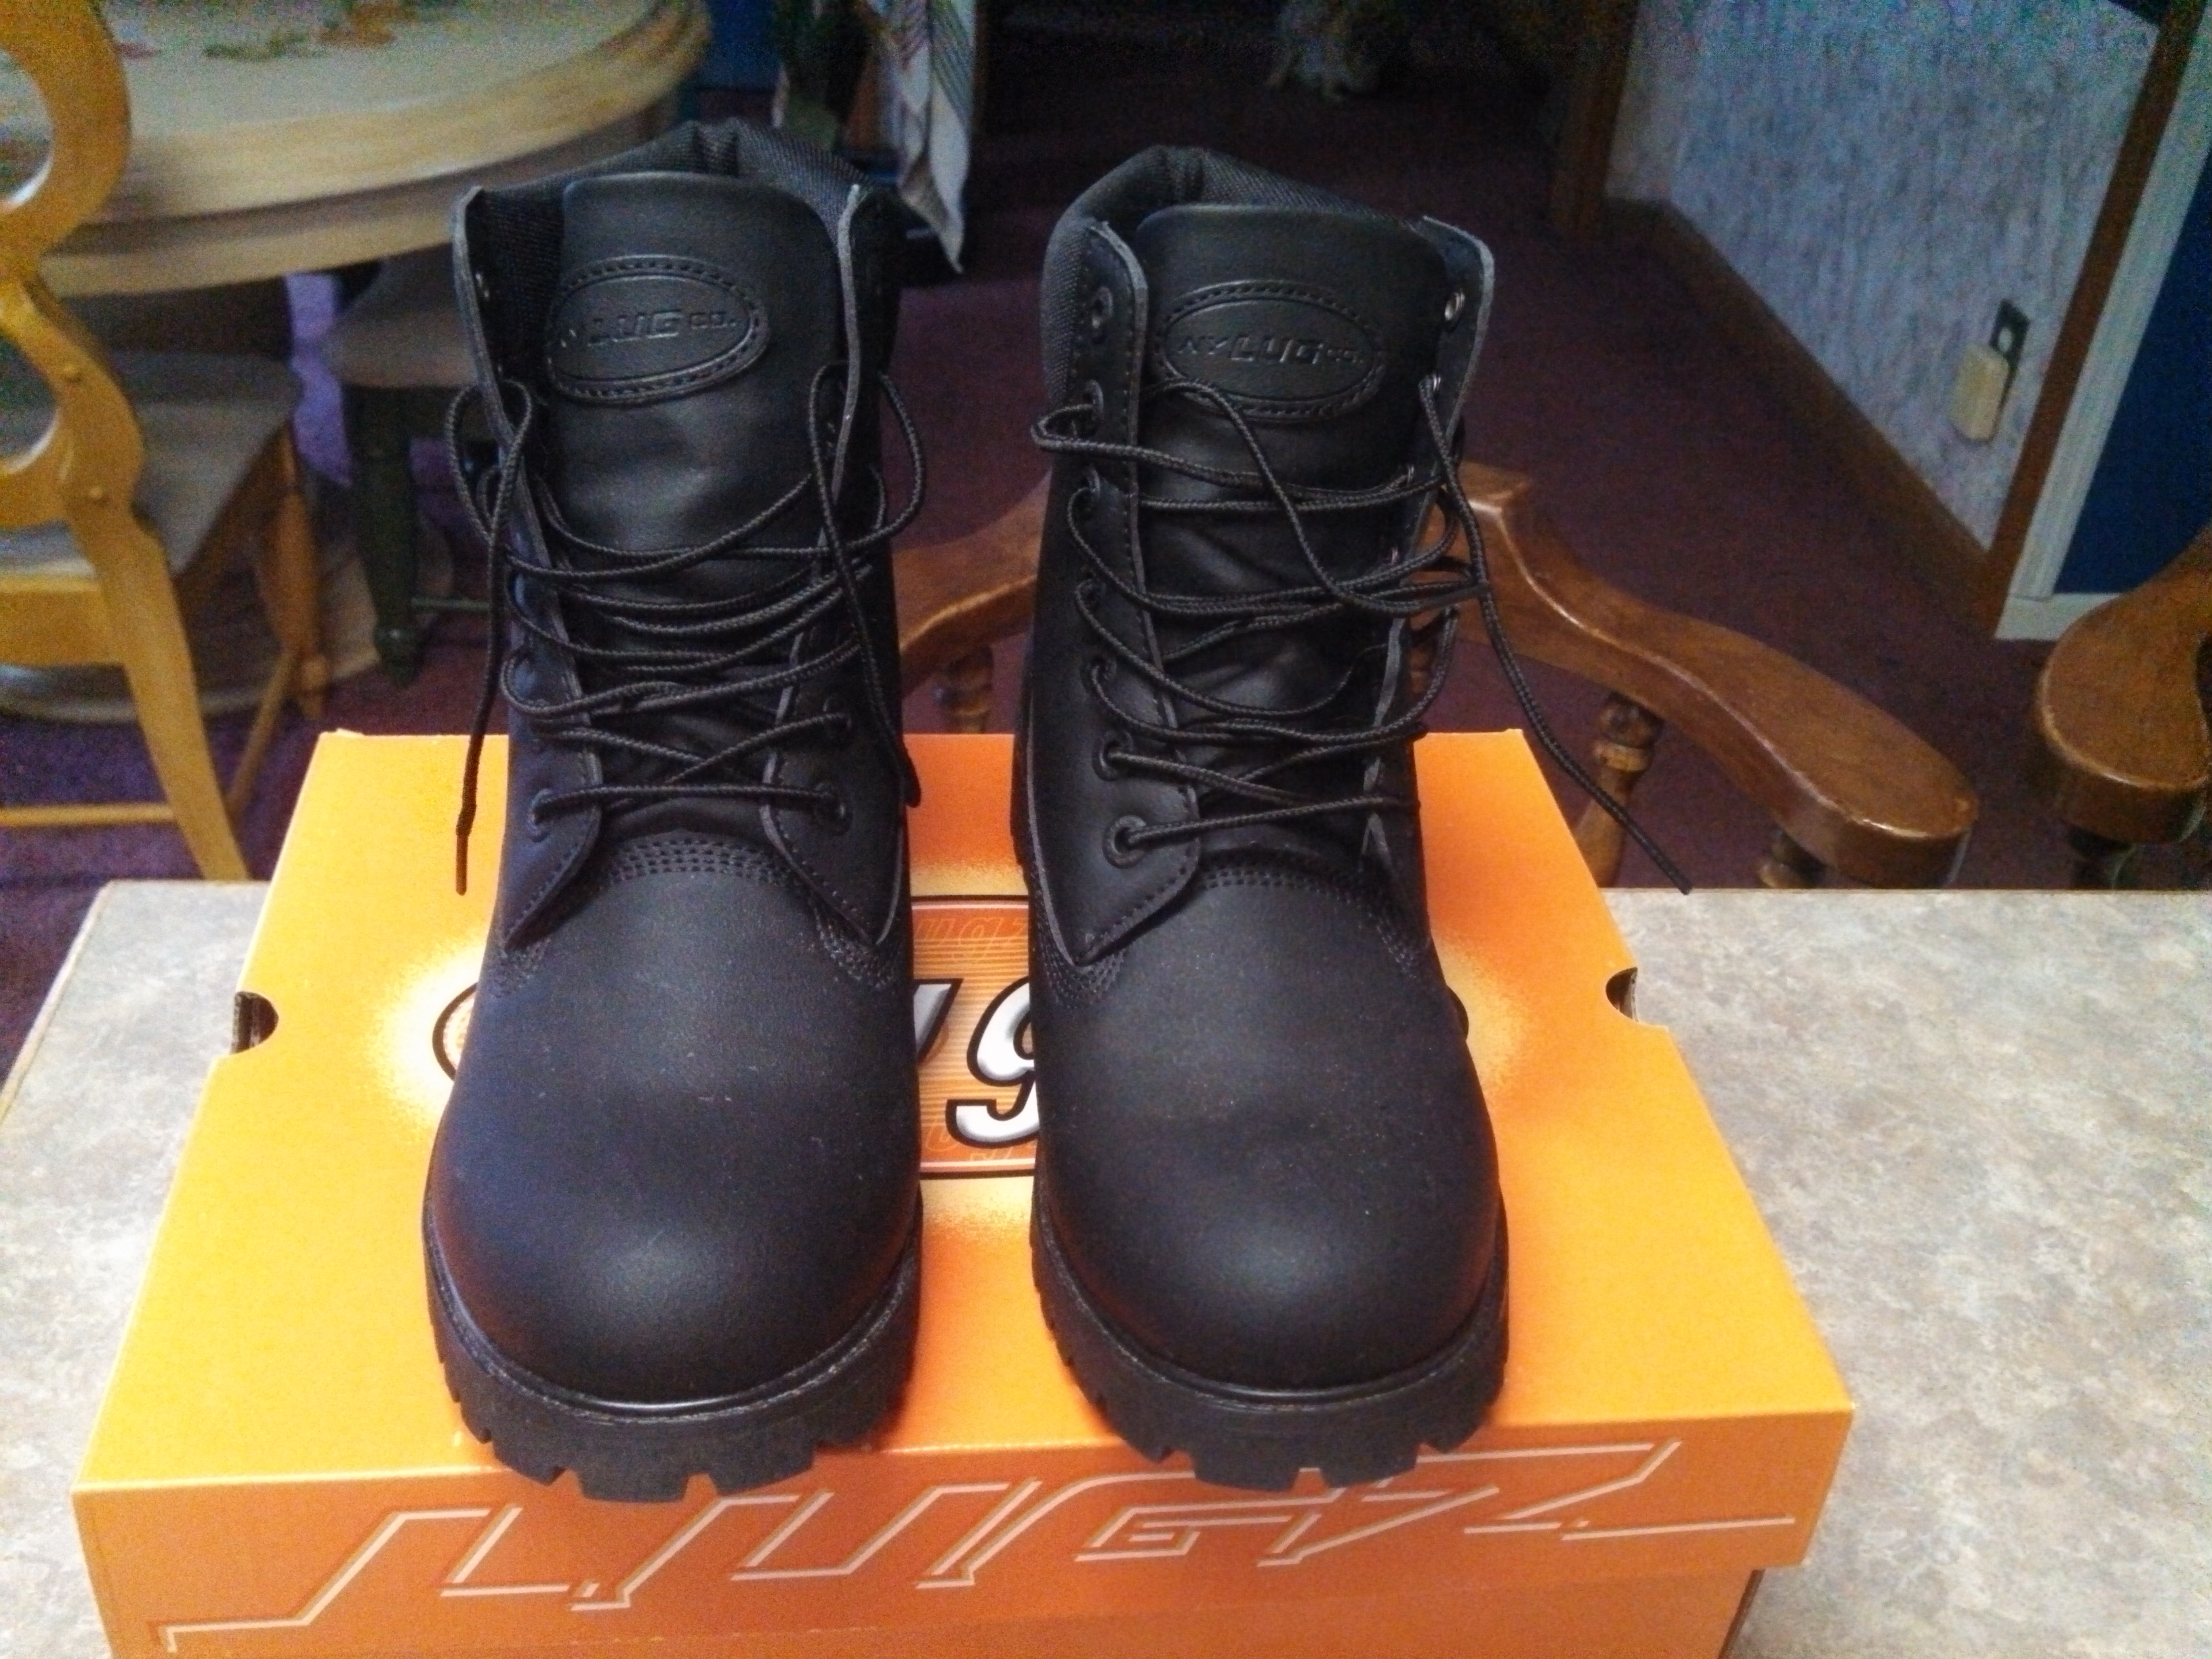 58e9687bc38 Lugz Men's Convoy 6-Inch Boot Review - BB Product Reviews